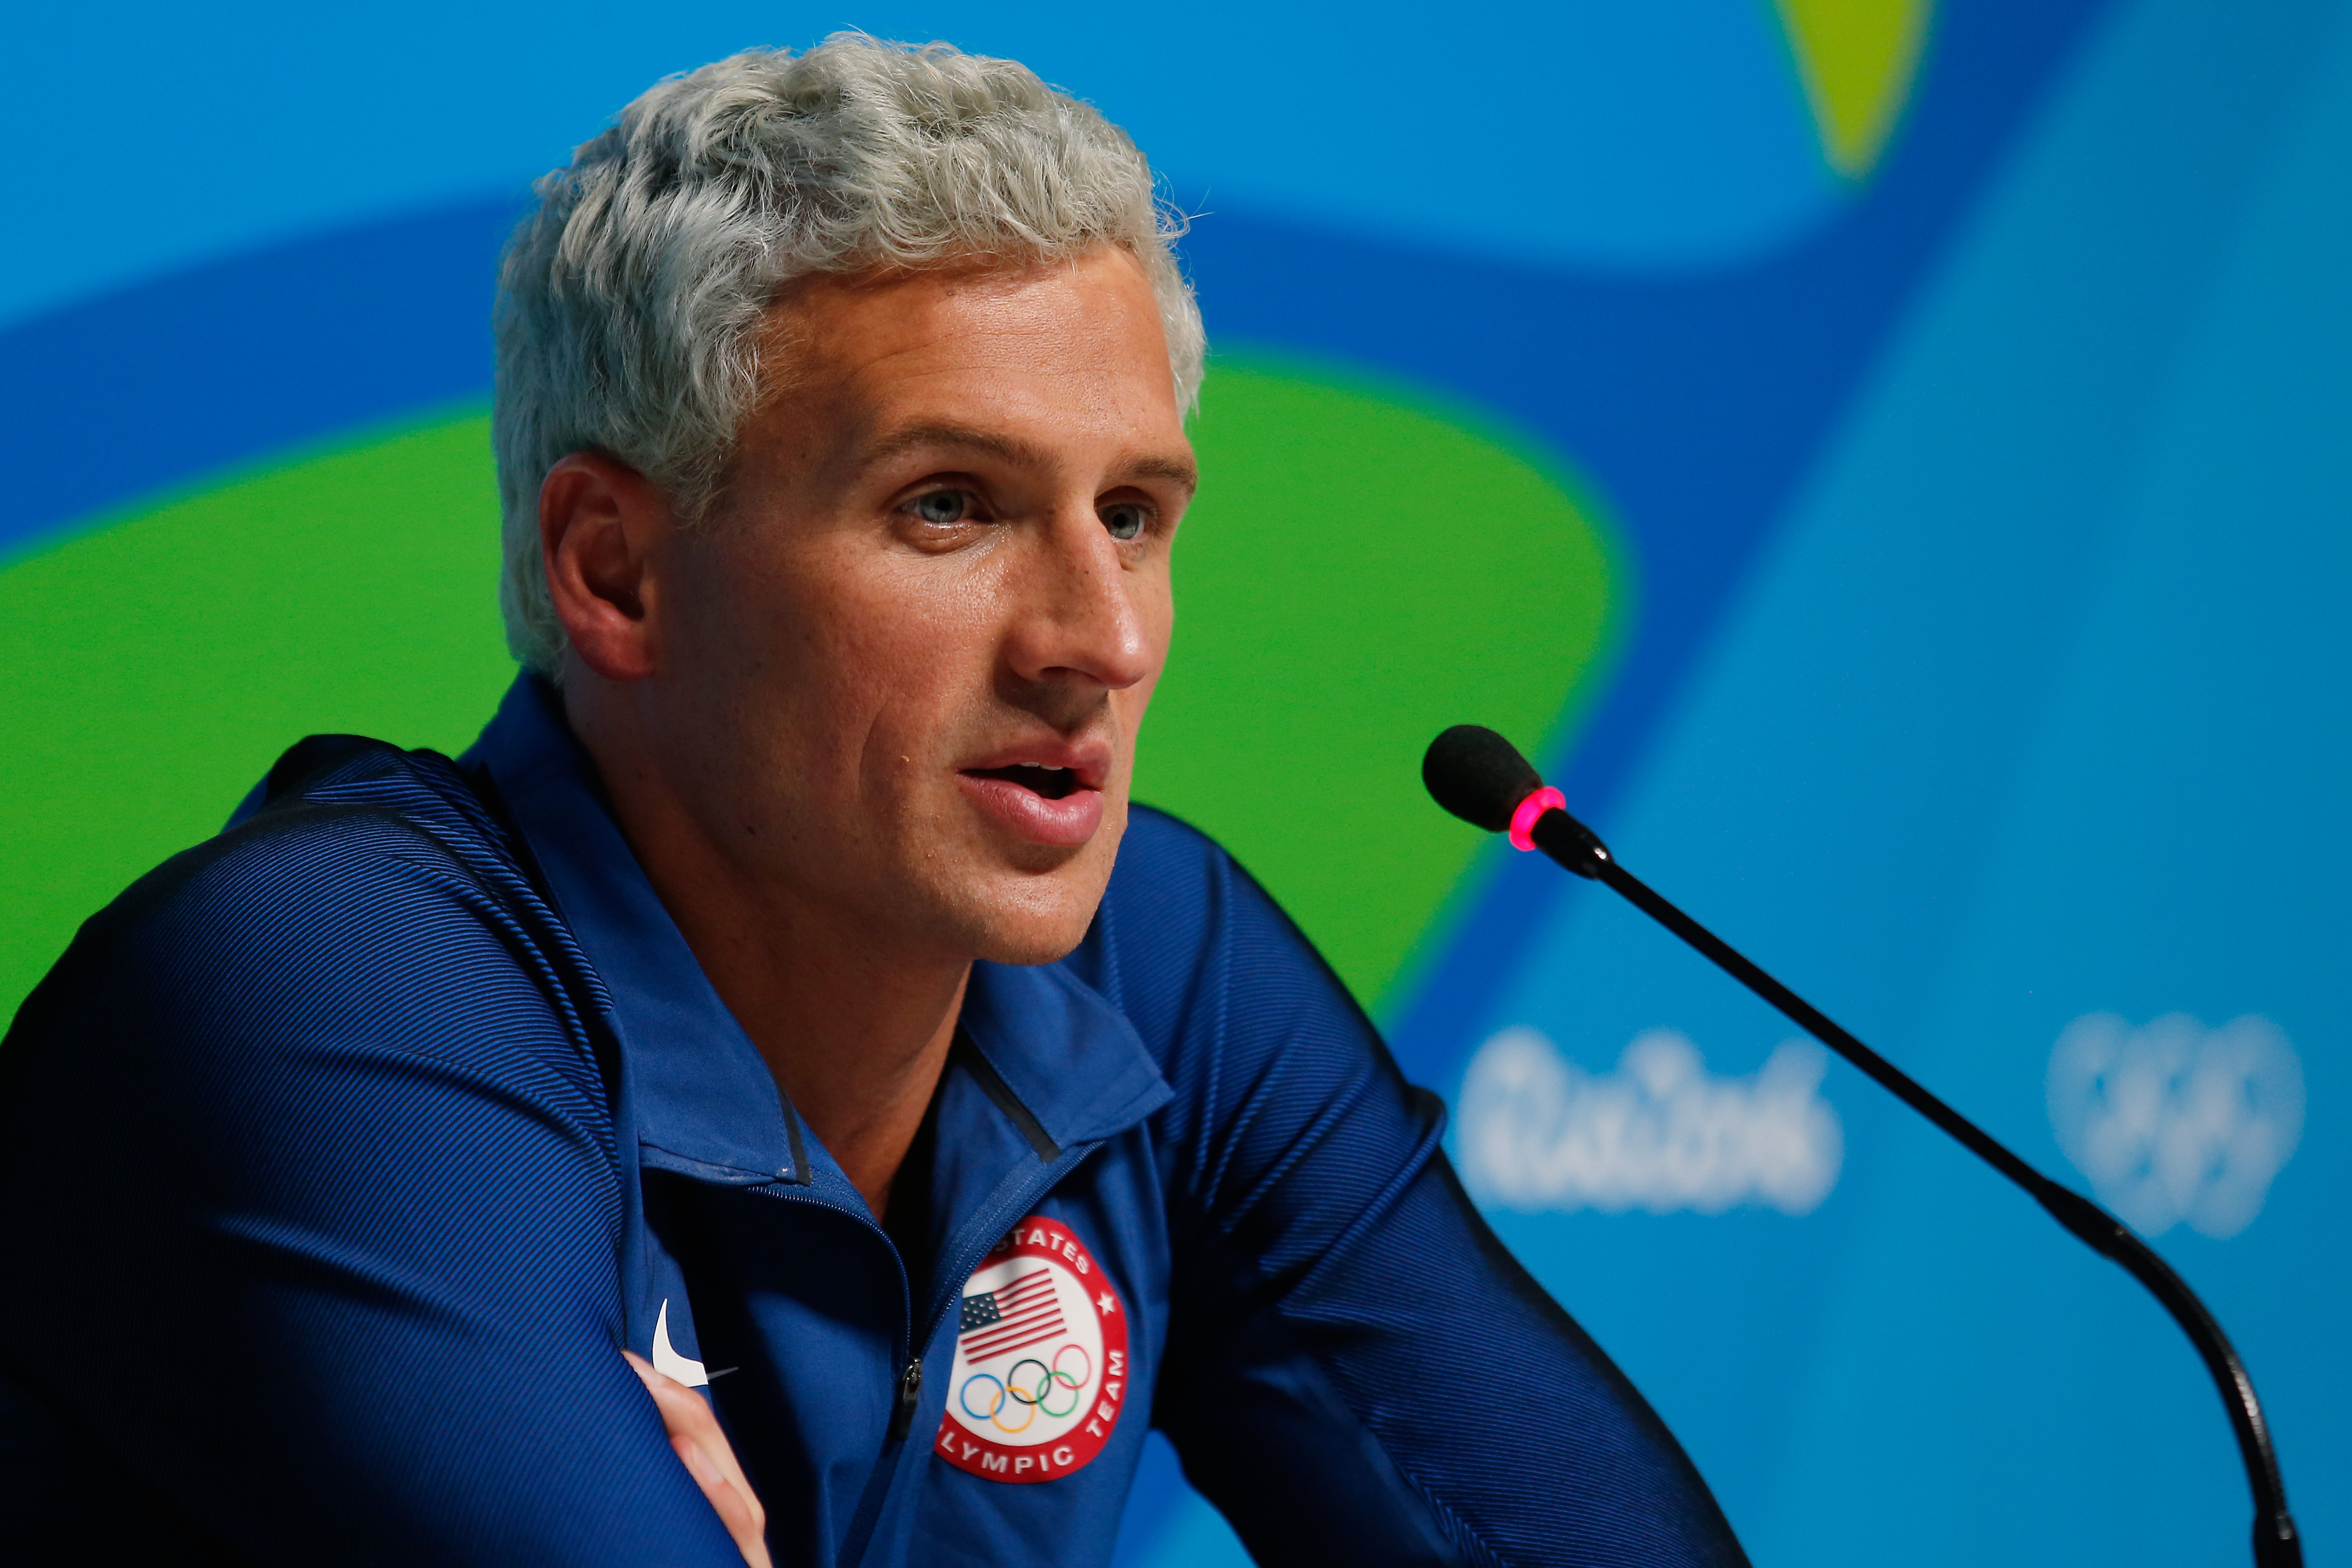 Ryan Lochte of the United States attends a press conference in the Main Press Center on Day 7 of the Rio Olympics on August 12, 2016 in Rio de Janeiro, Brazil.  (Photo by Matt Hazlett/Getty Images)